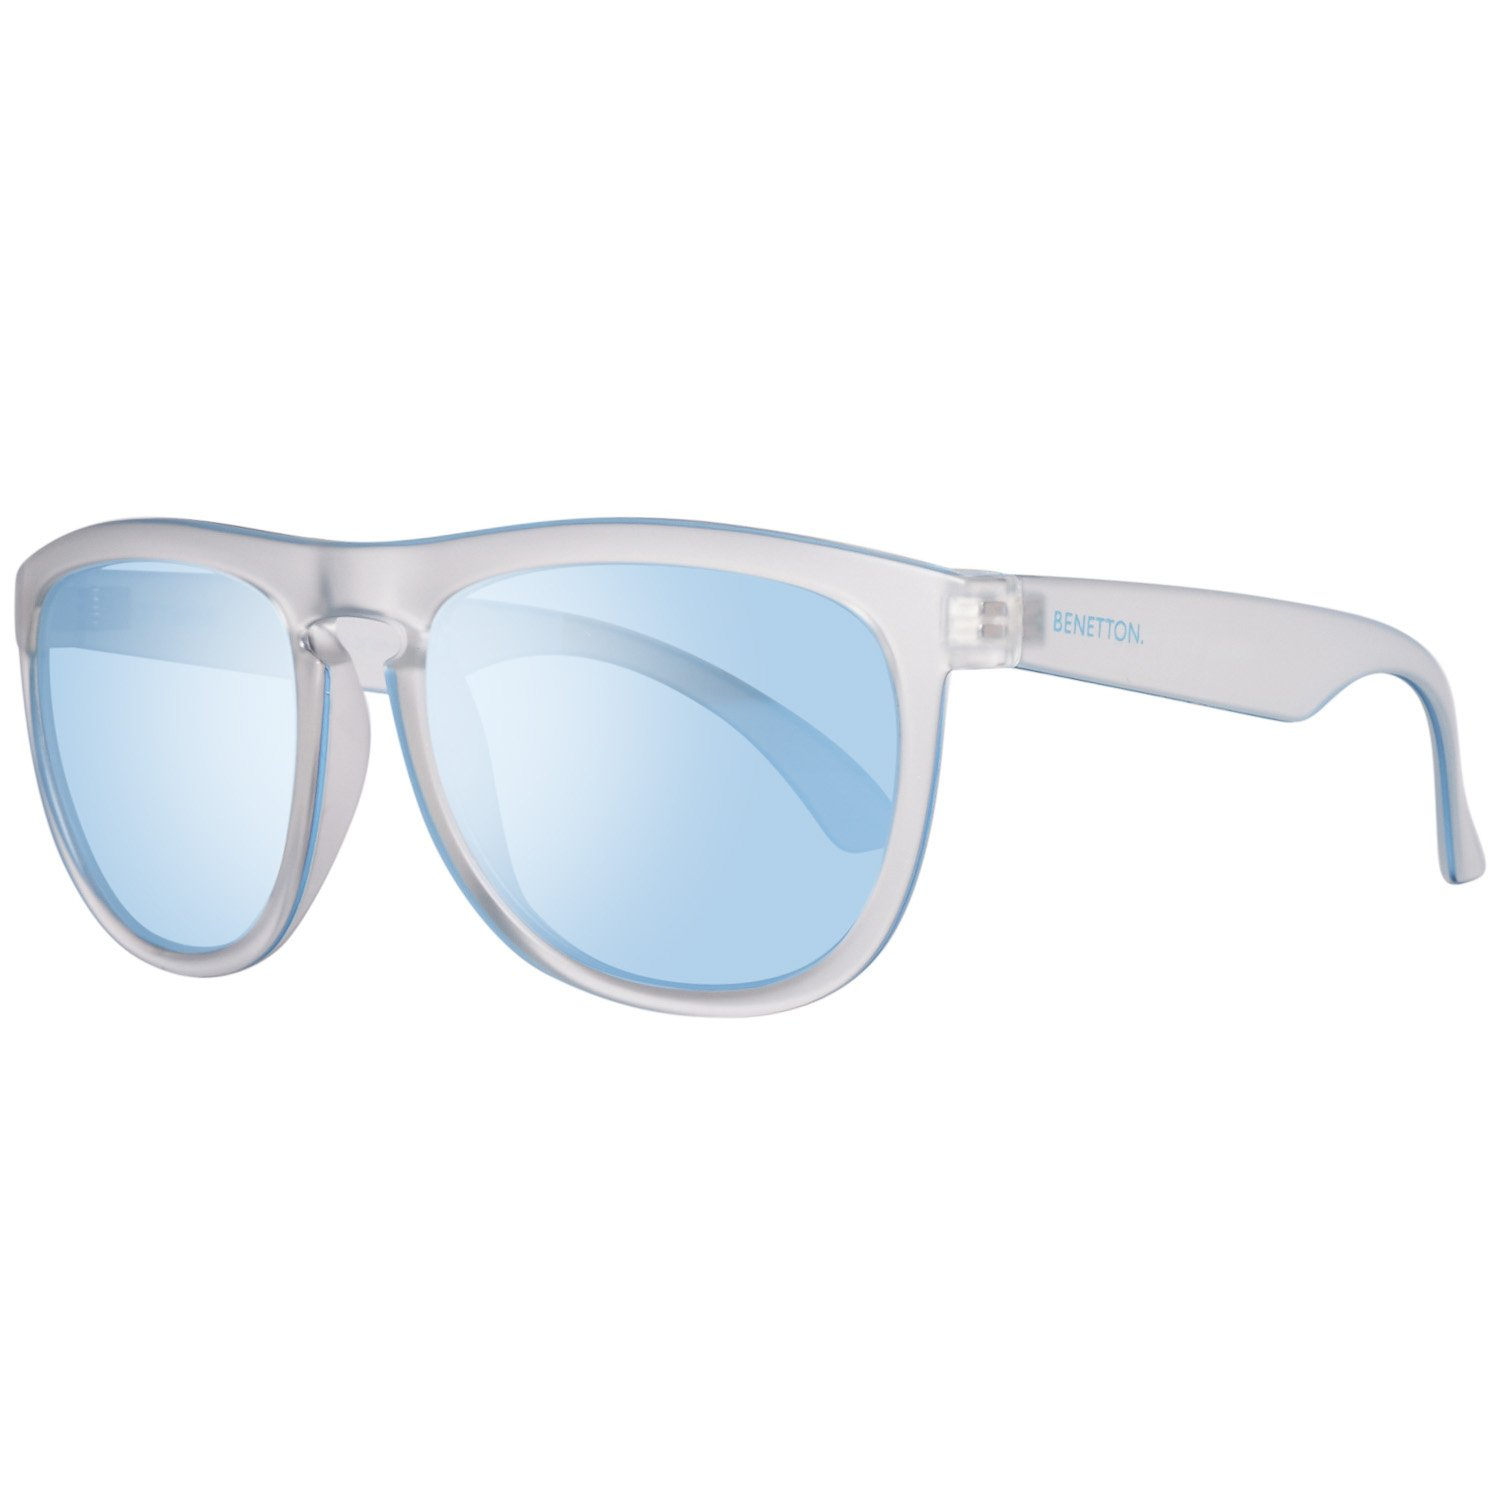 BENETTON Men's BE993S03 Sunglasses, Transparent (Crystl), 55 BE-993S-03_CRYSTAL-55